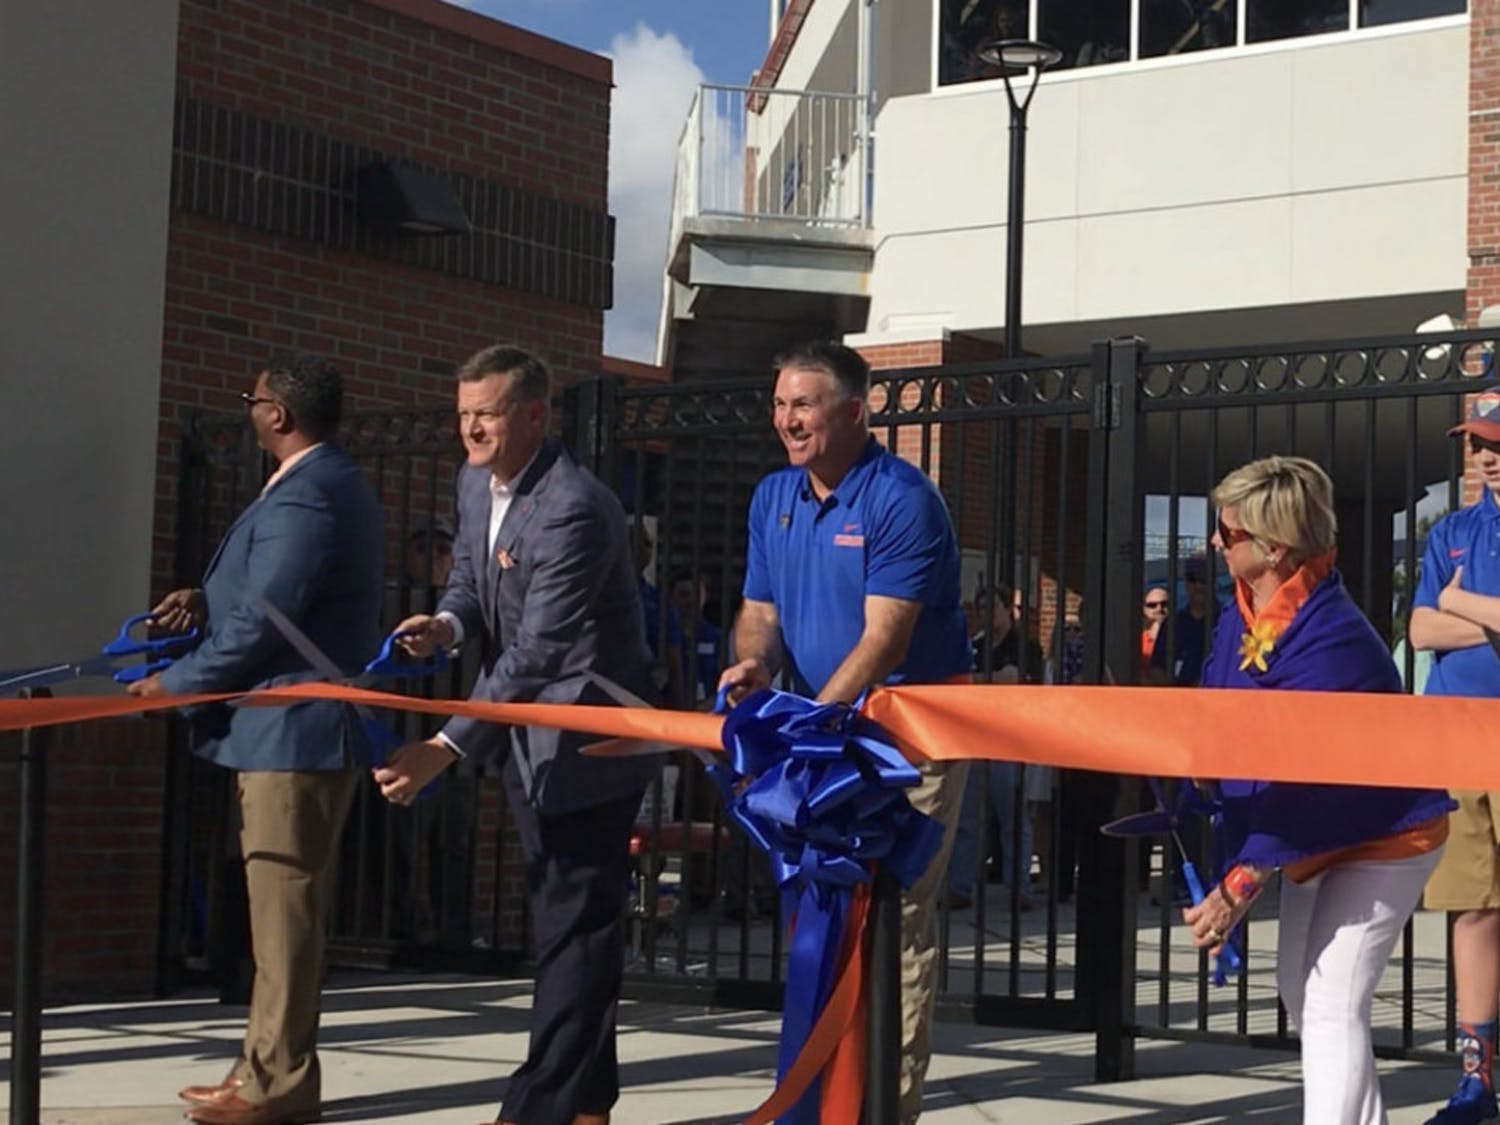 UF softball coach Tim Walton and Athletic Director Scott Stricklin cut the ribbon at the unveiling of the newly renovated Katie Seashole Pressly Stadium before the Gators faced the Japan National Team in an exhibition Tuesday night.